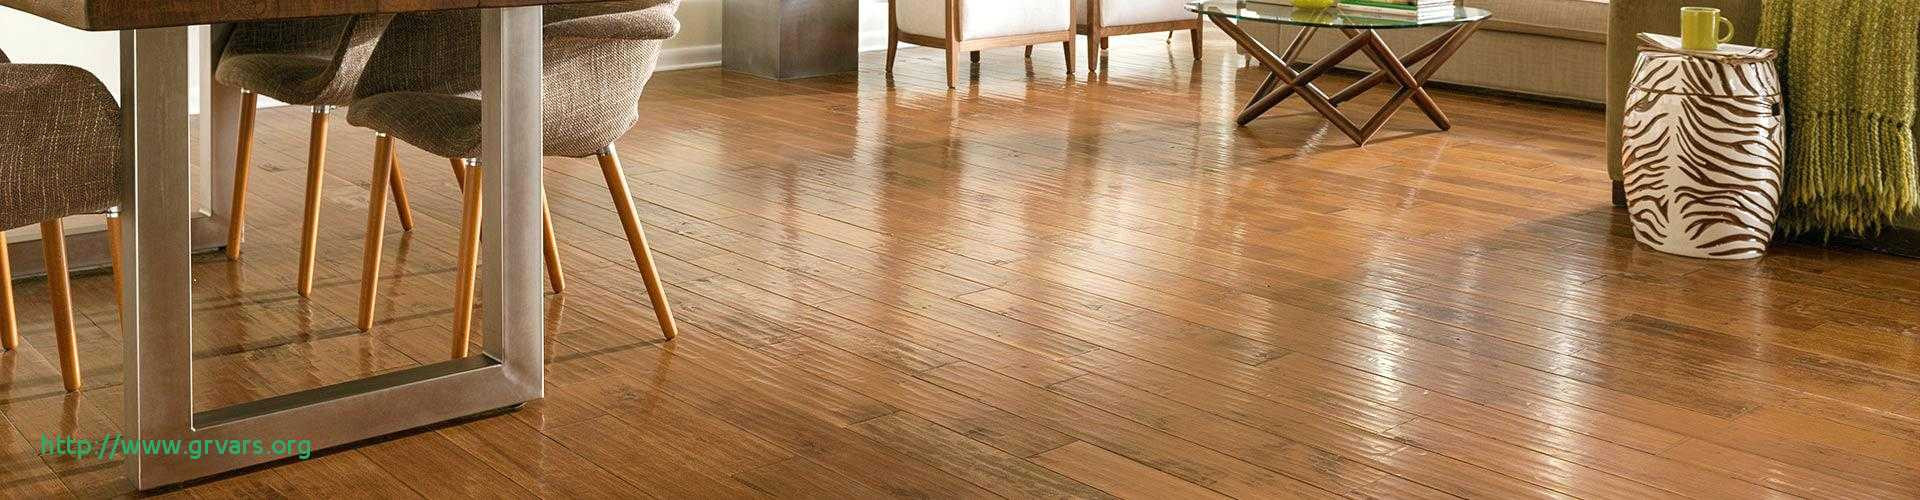 lowes hardwood floor transition of 24 a‰lagant installing porcelain tile on wood floor ideas blog for full size of hard wood tile porcelain hardwood cost bathroom over flooring installation lt lowes transition